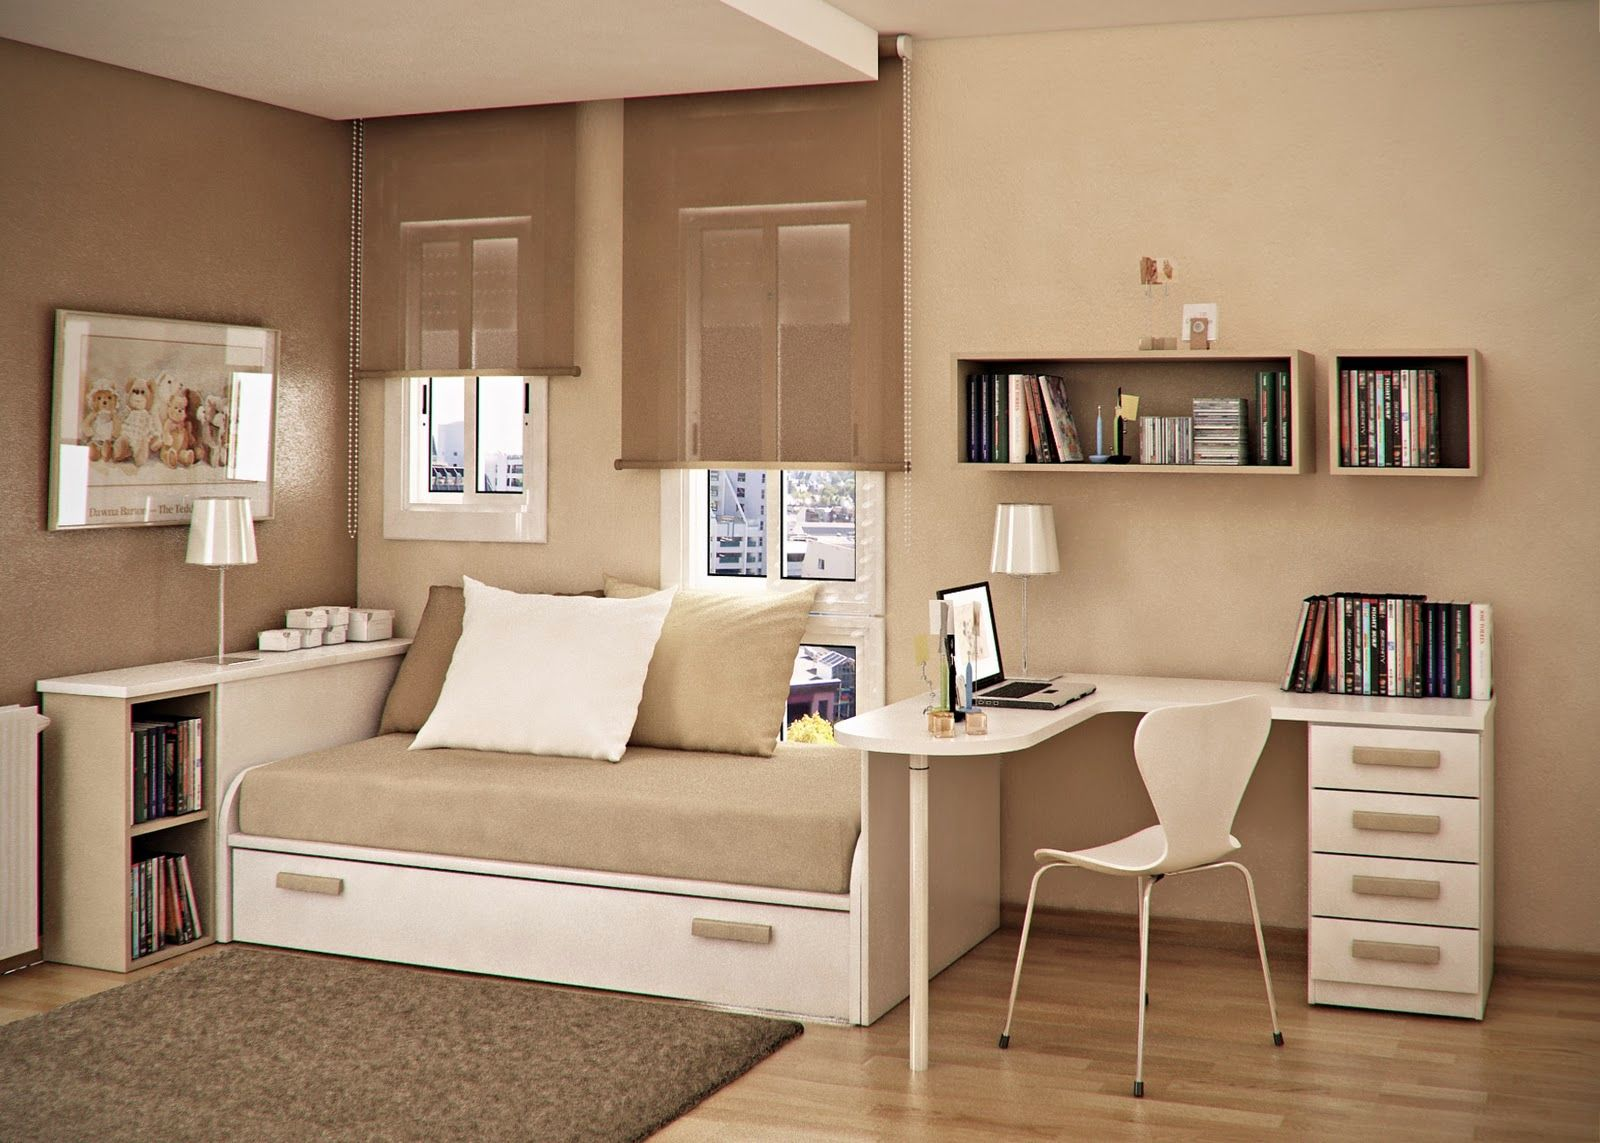 Delightful ... Bedroom Ideas Trends Modern  Beige Brown Teens Room Design L Shaped 4 Drawery Desk  Wall Fitted Daybed Large Under Storage Drawer Interiorior Decoratin